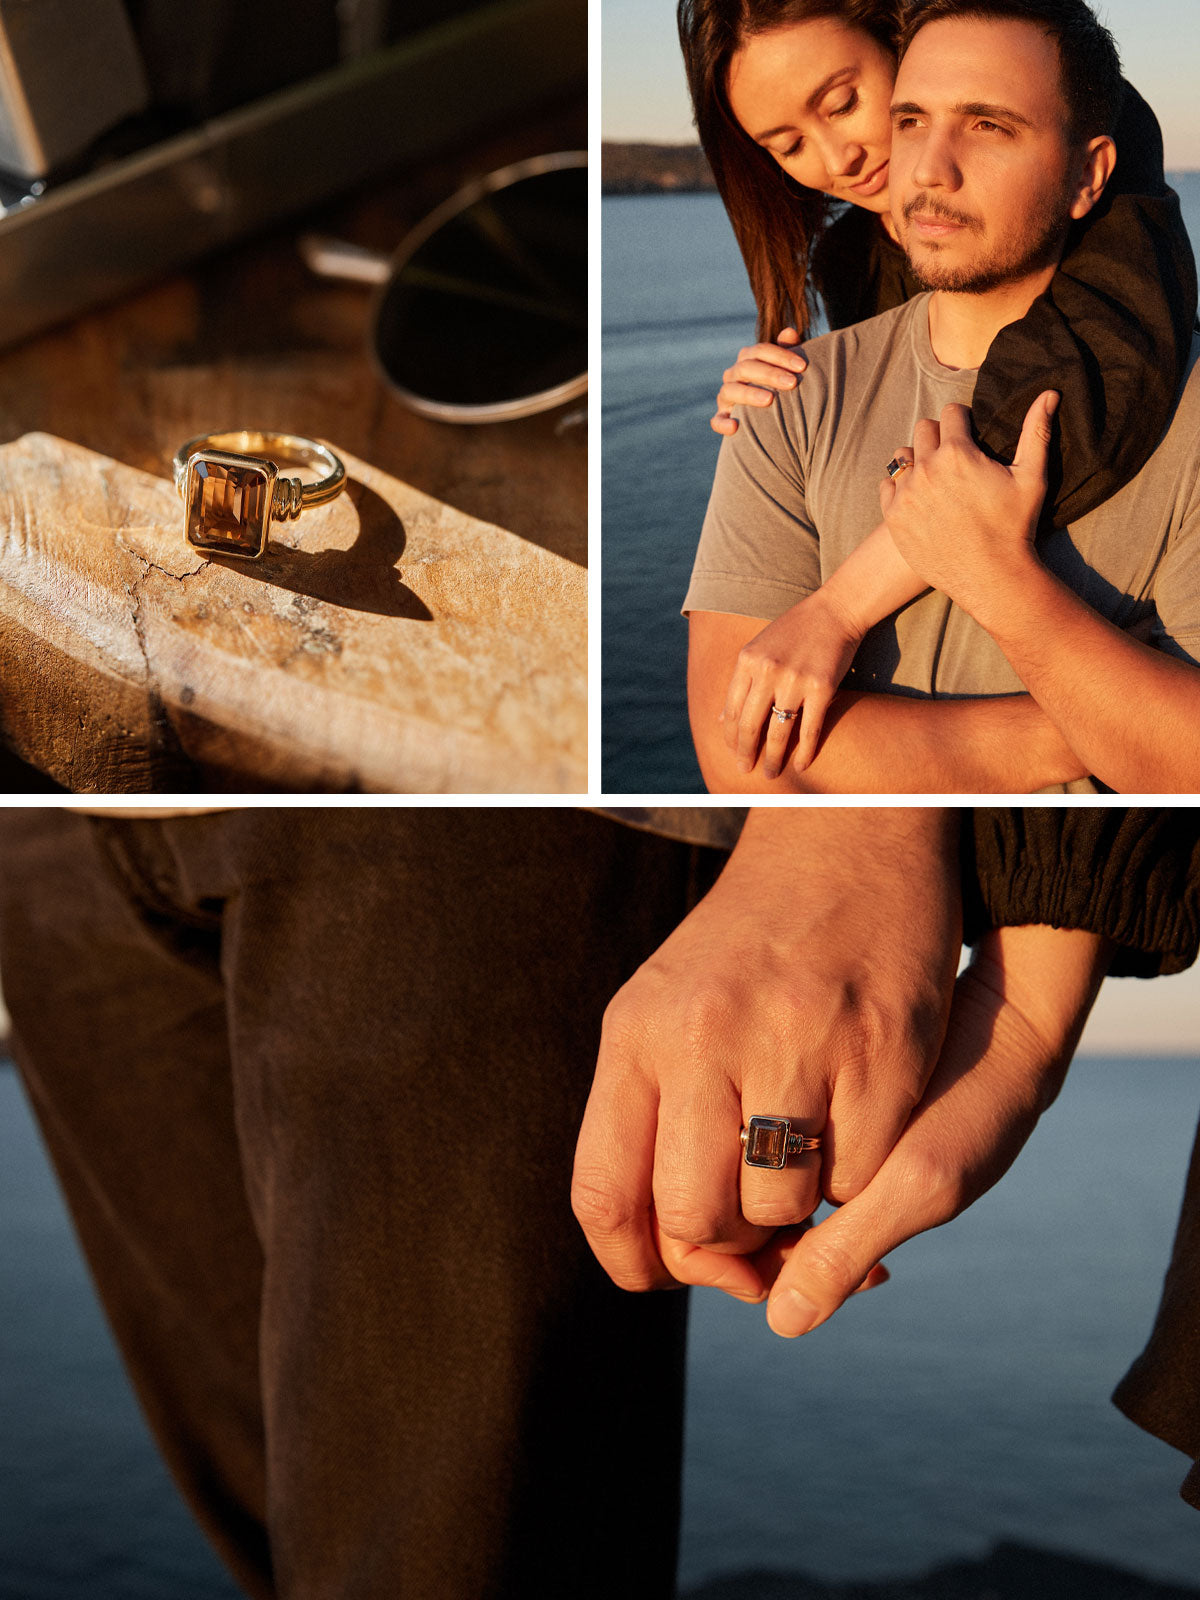 The smokey quartz wedding band displayed on a wooden table and NMJ Lovers Tāne and Amy embracing each other on the next image